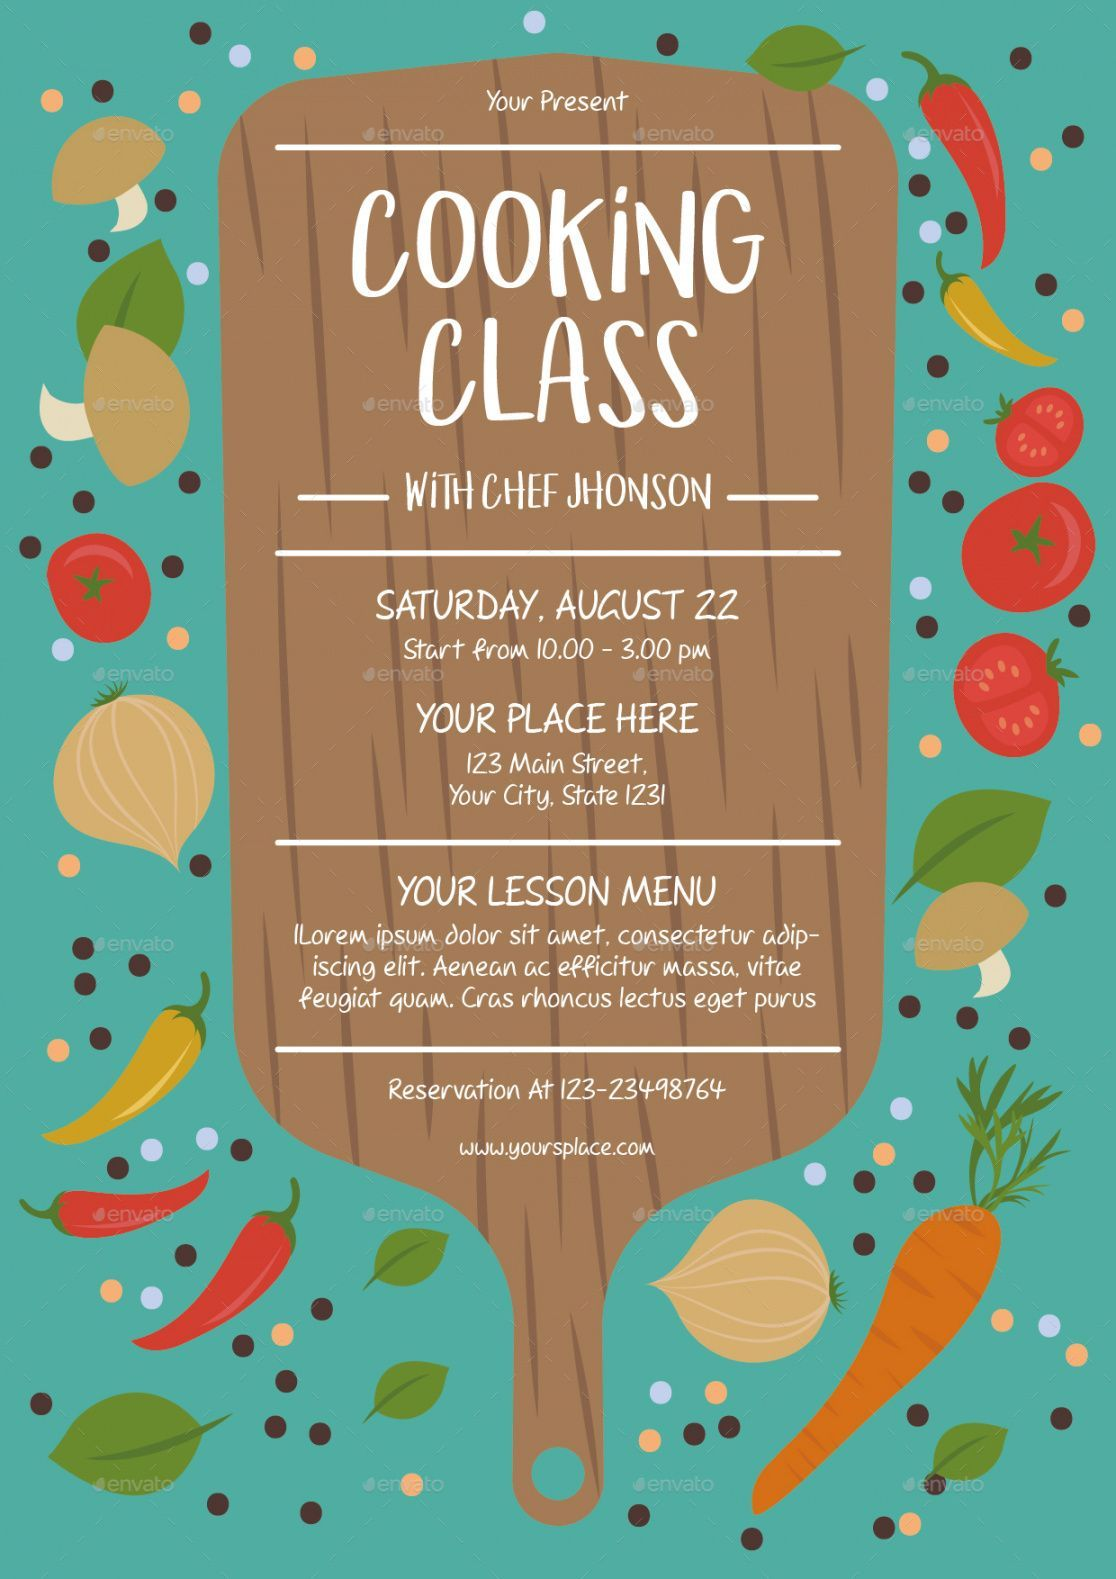 Cooking Lessons Flyer Template Cooking Classes Design Cooking Lessons Cooking